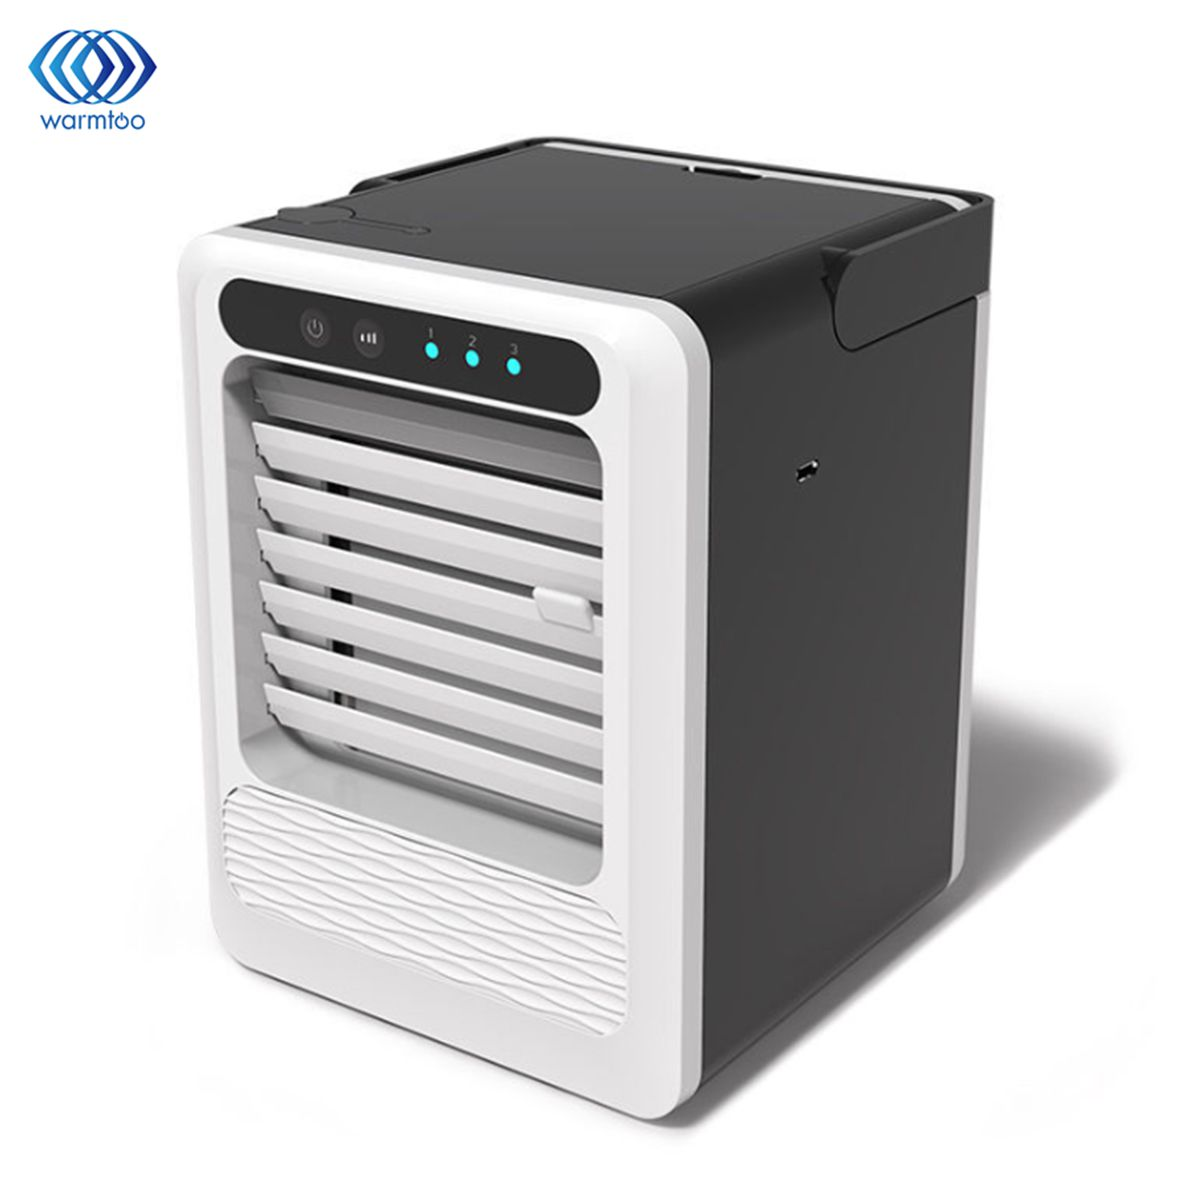 Portable Air Conditioner 3 Gear Mini USB Air Cooler Fan Cooling Humidifier Home Room Air Conditioning Quick & Easy Way To Cool